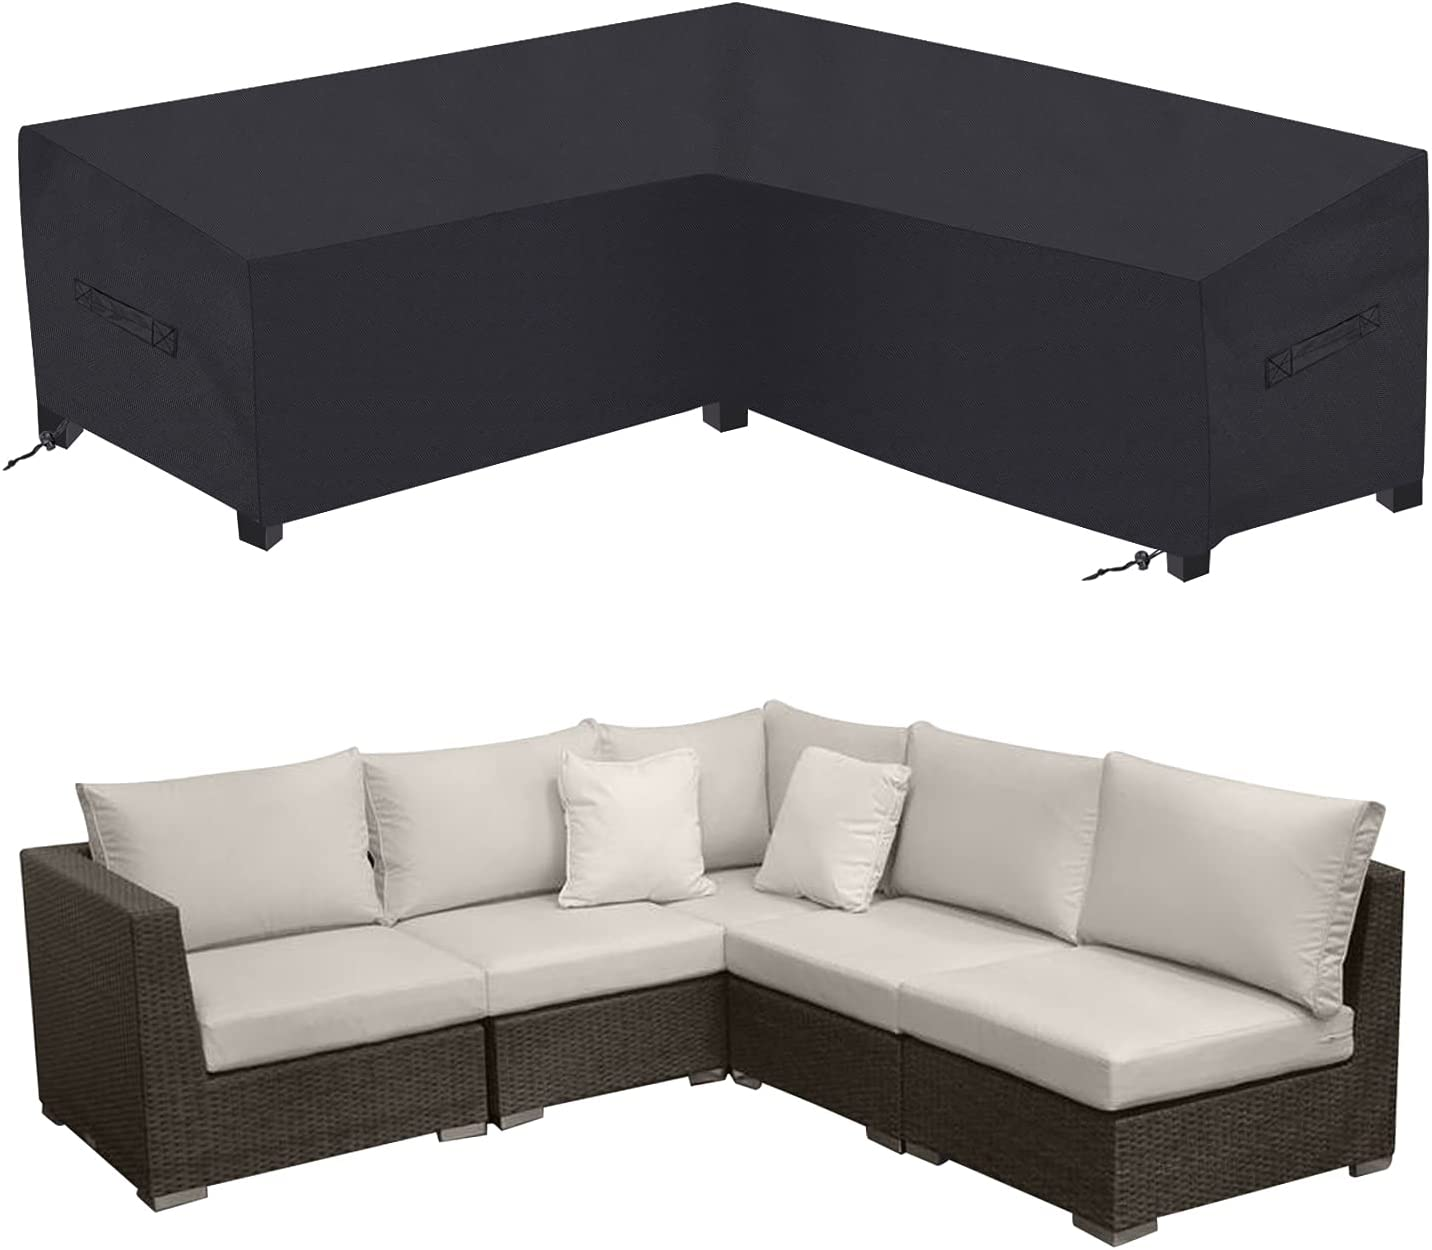 Outdoor Sectional Sofa Cover Waterproof Heavy Duty 85